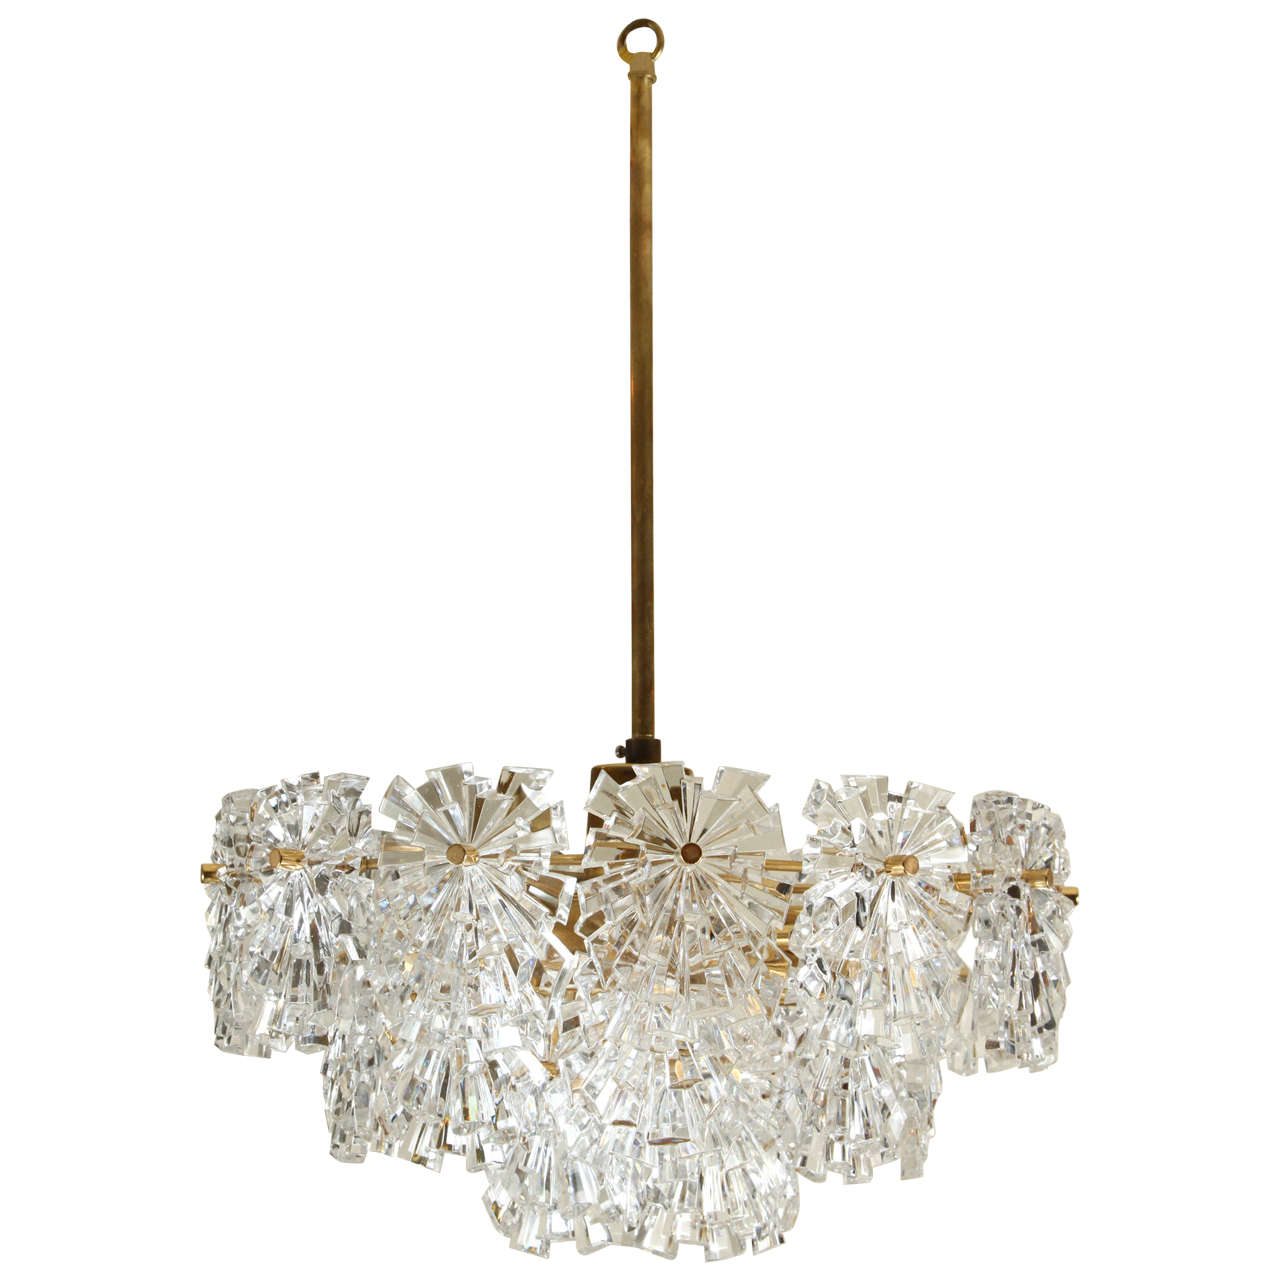 Charming Chandeliers That Make A Statement: Charming Chandelier By Kinkeldey At 1stdibs